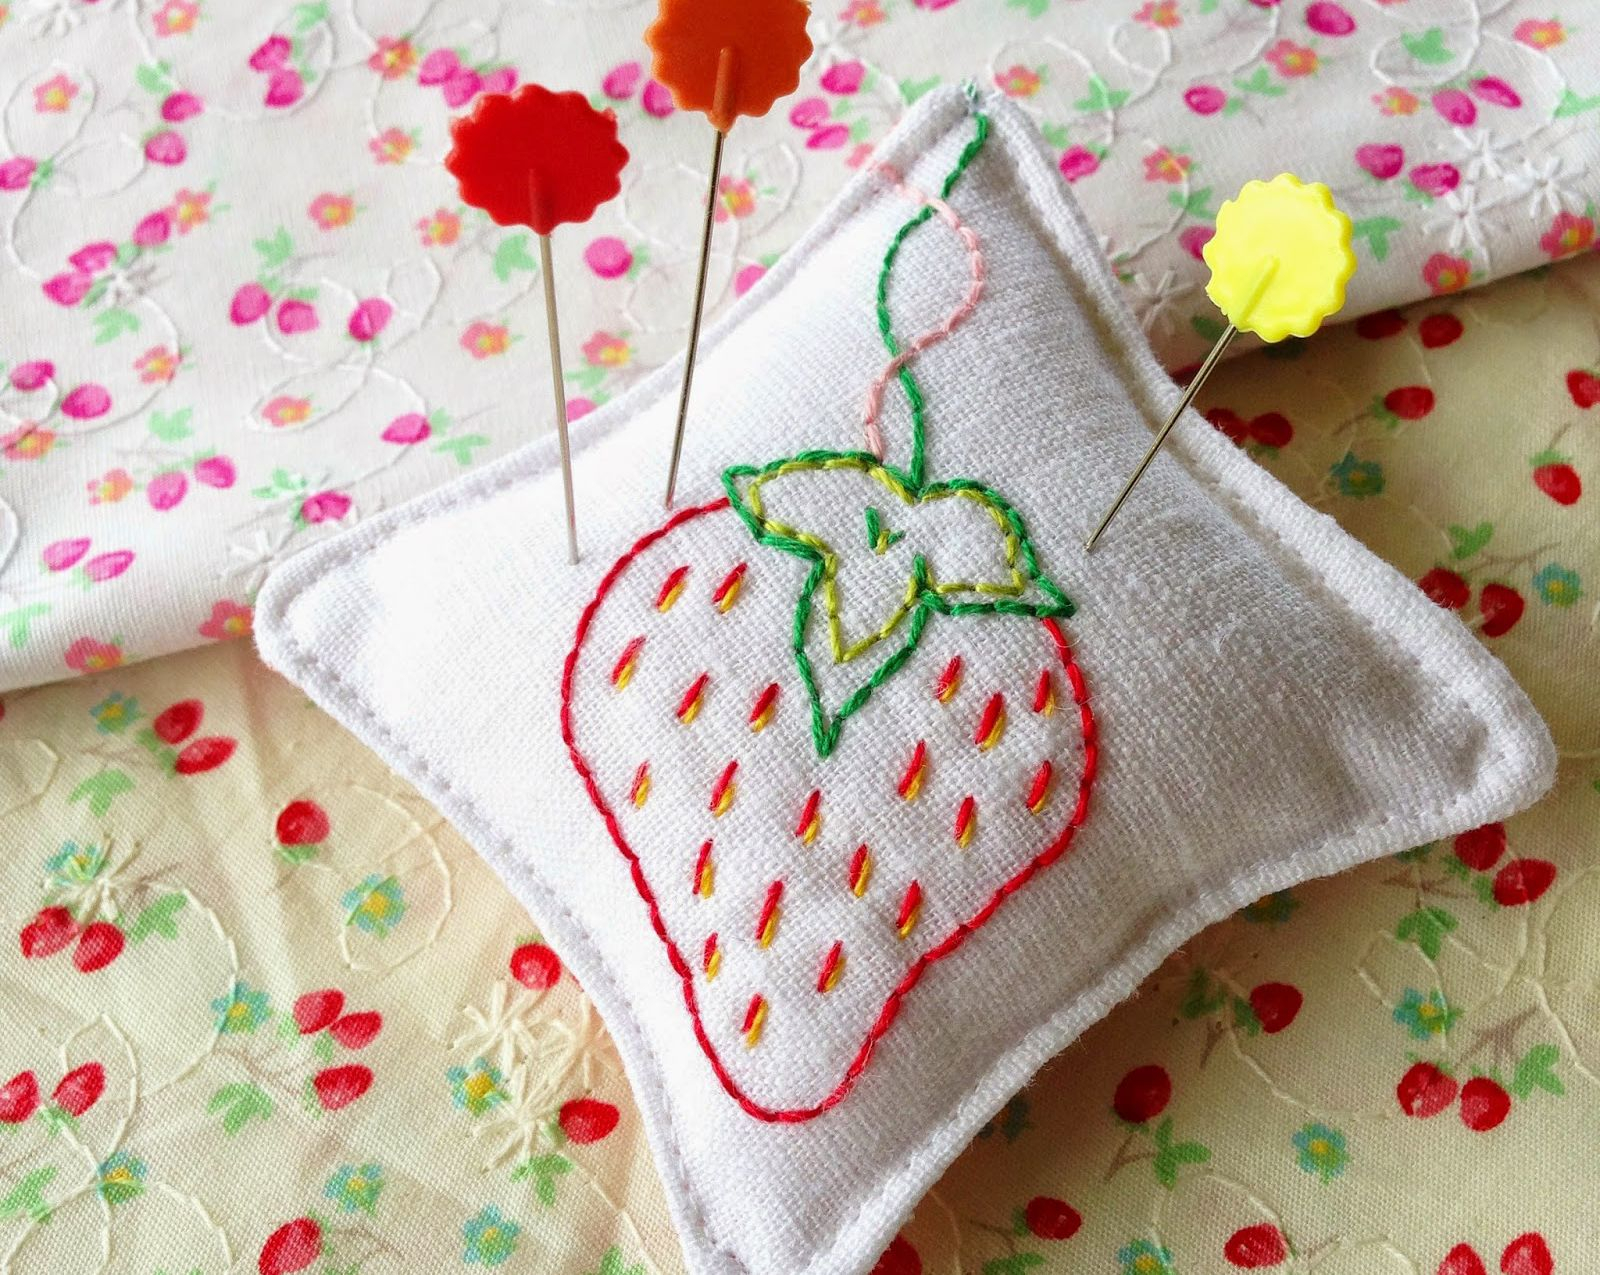 Bohemian Embroidery Patterns 10 Free Embroidery Patterns For Beginners